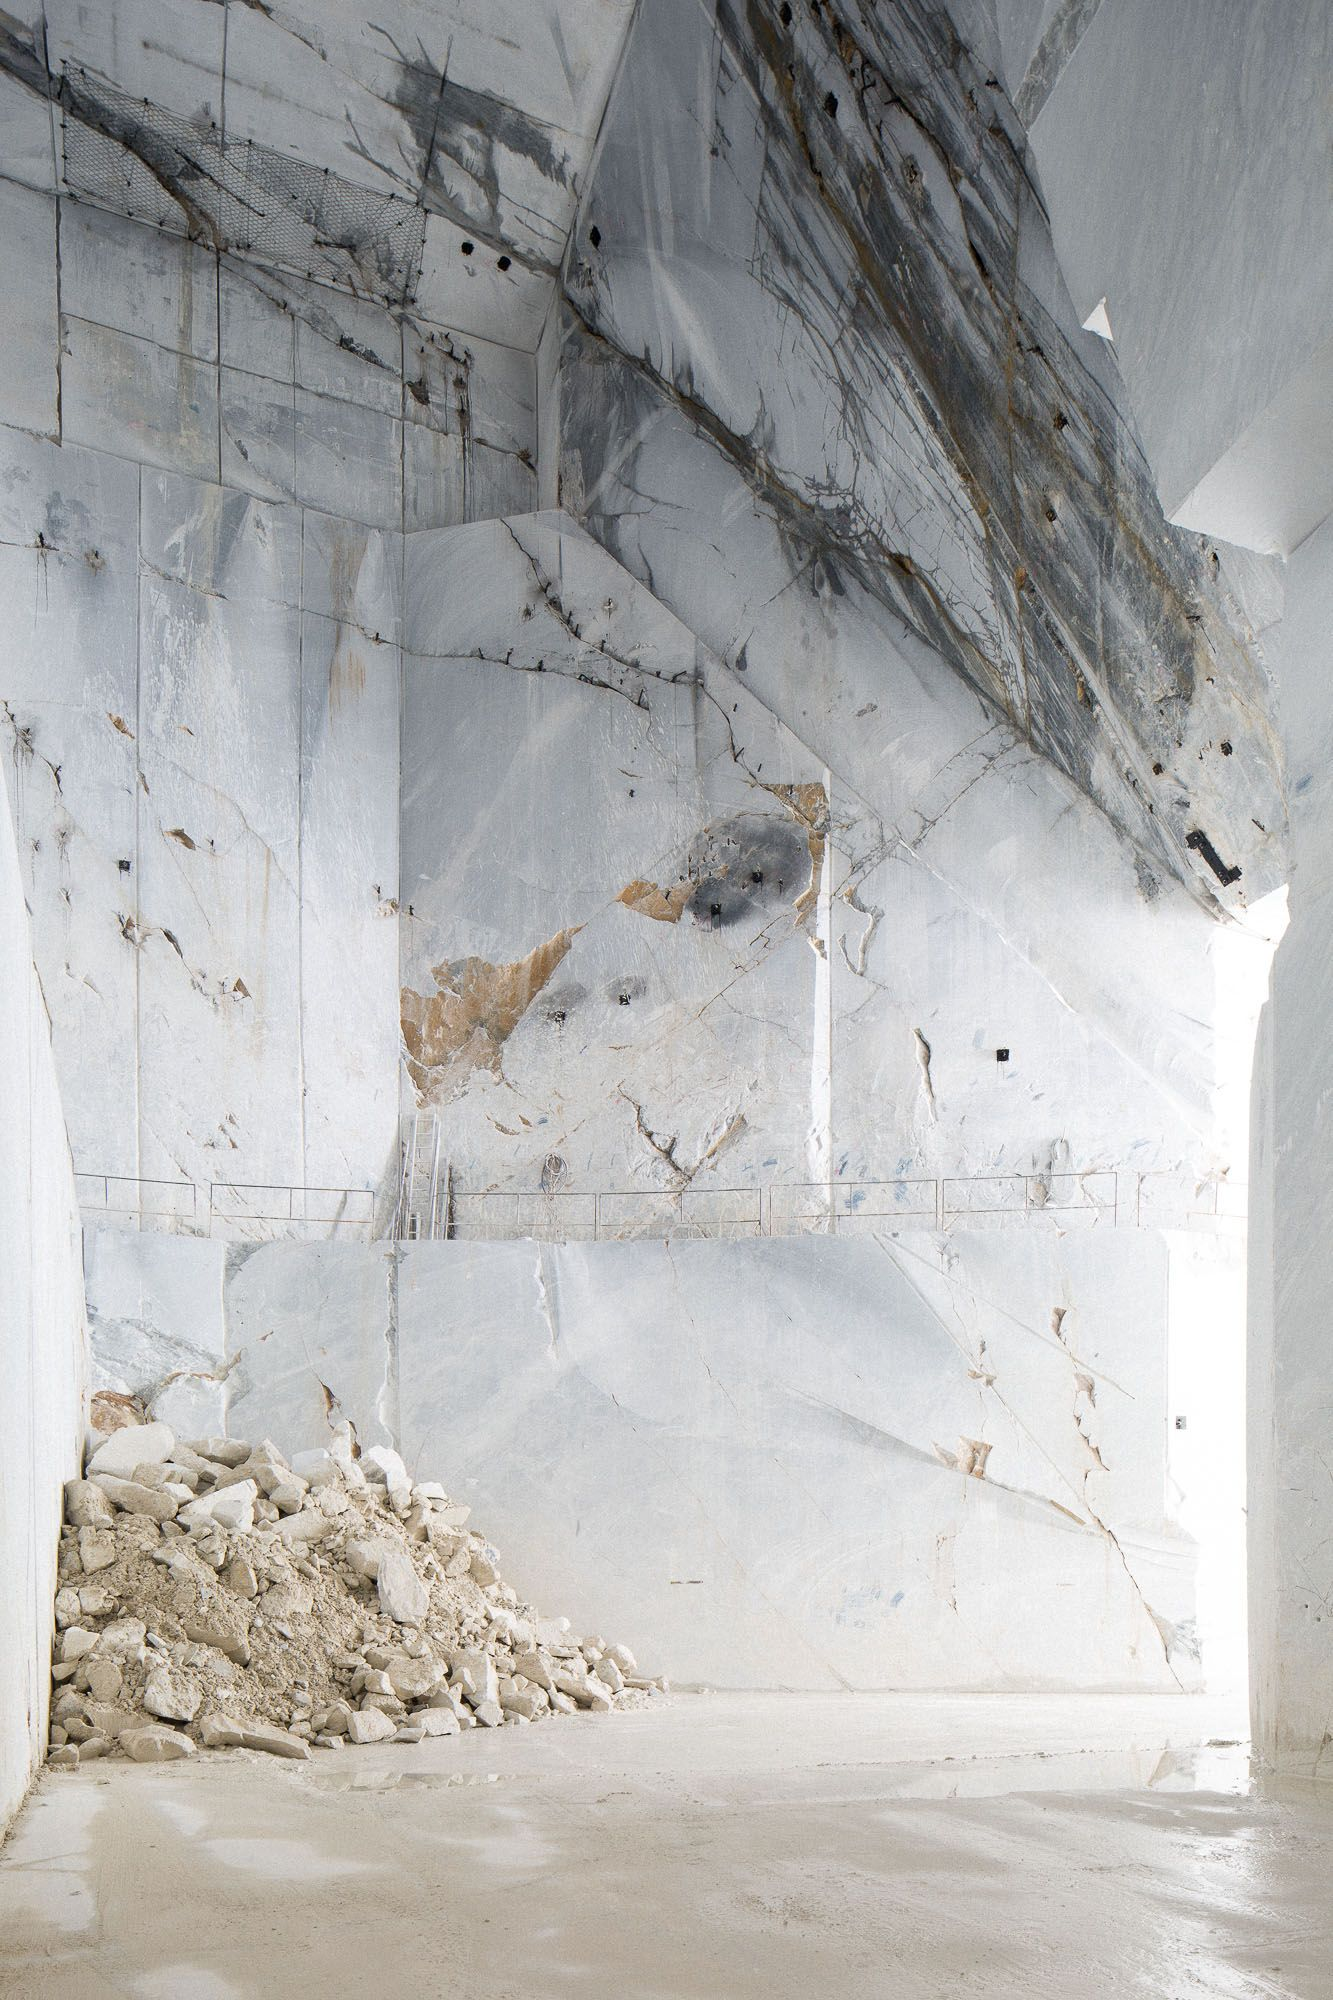 Entrance from the inside  Carrara marble quarry © Frederik